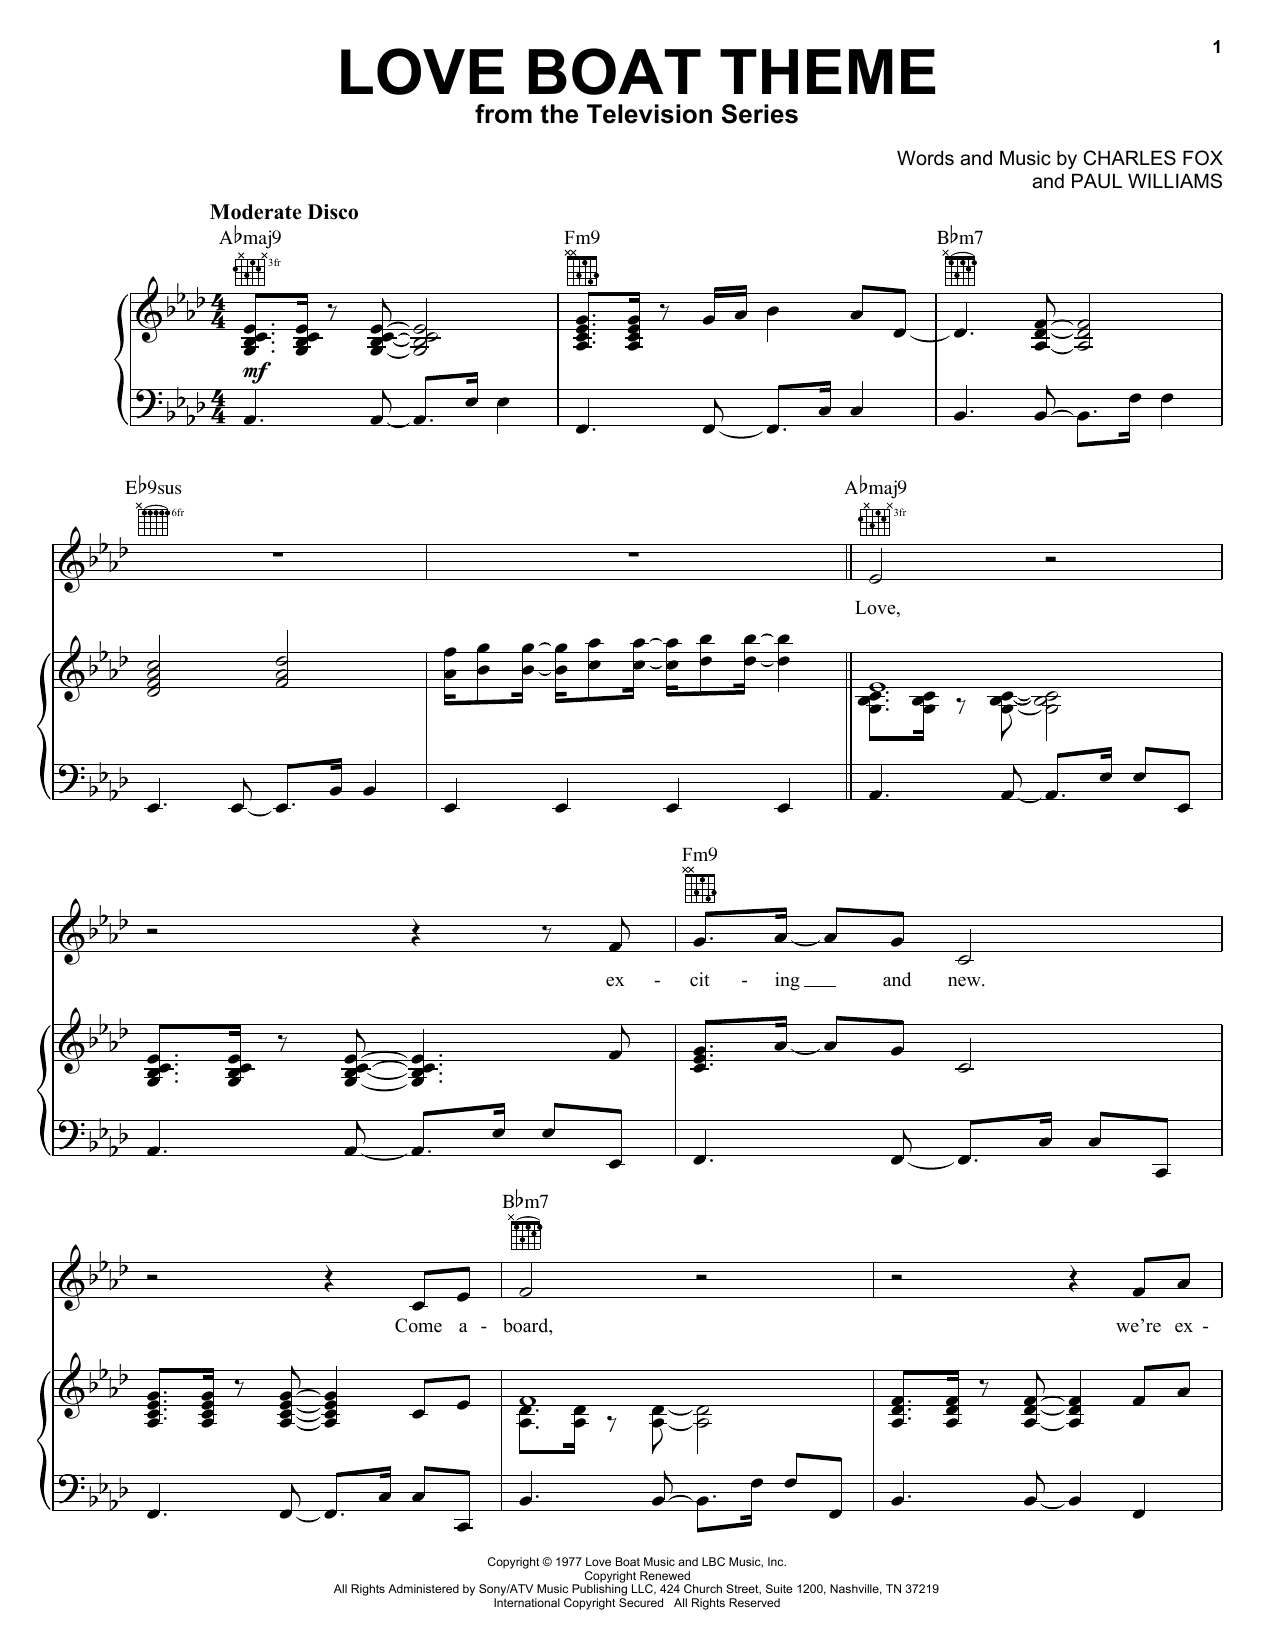 Charles Fox Love Boat Theme sheet music notes and chords